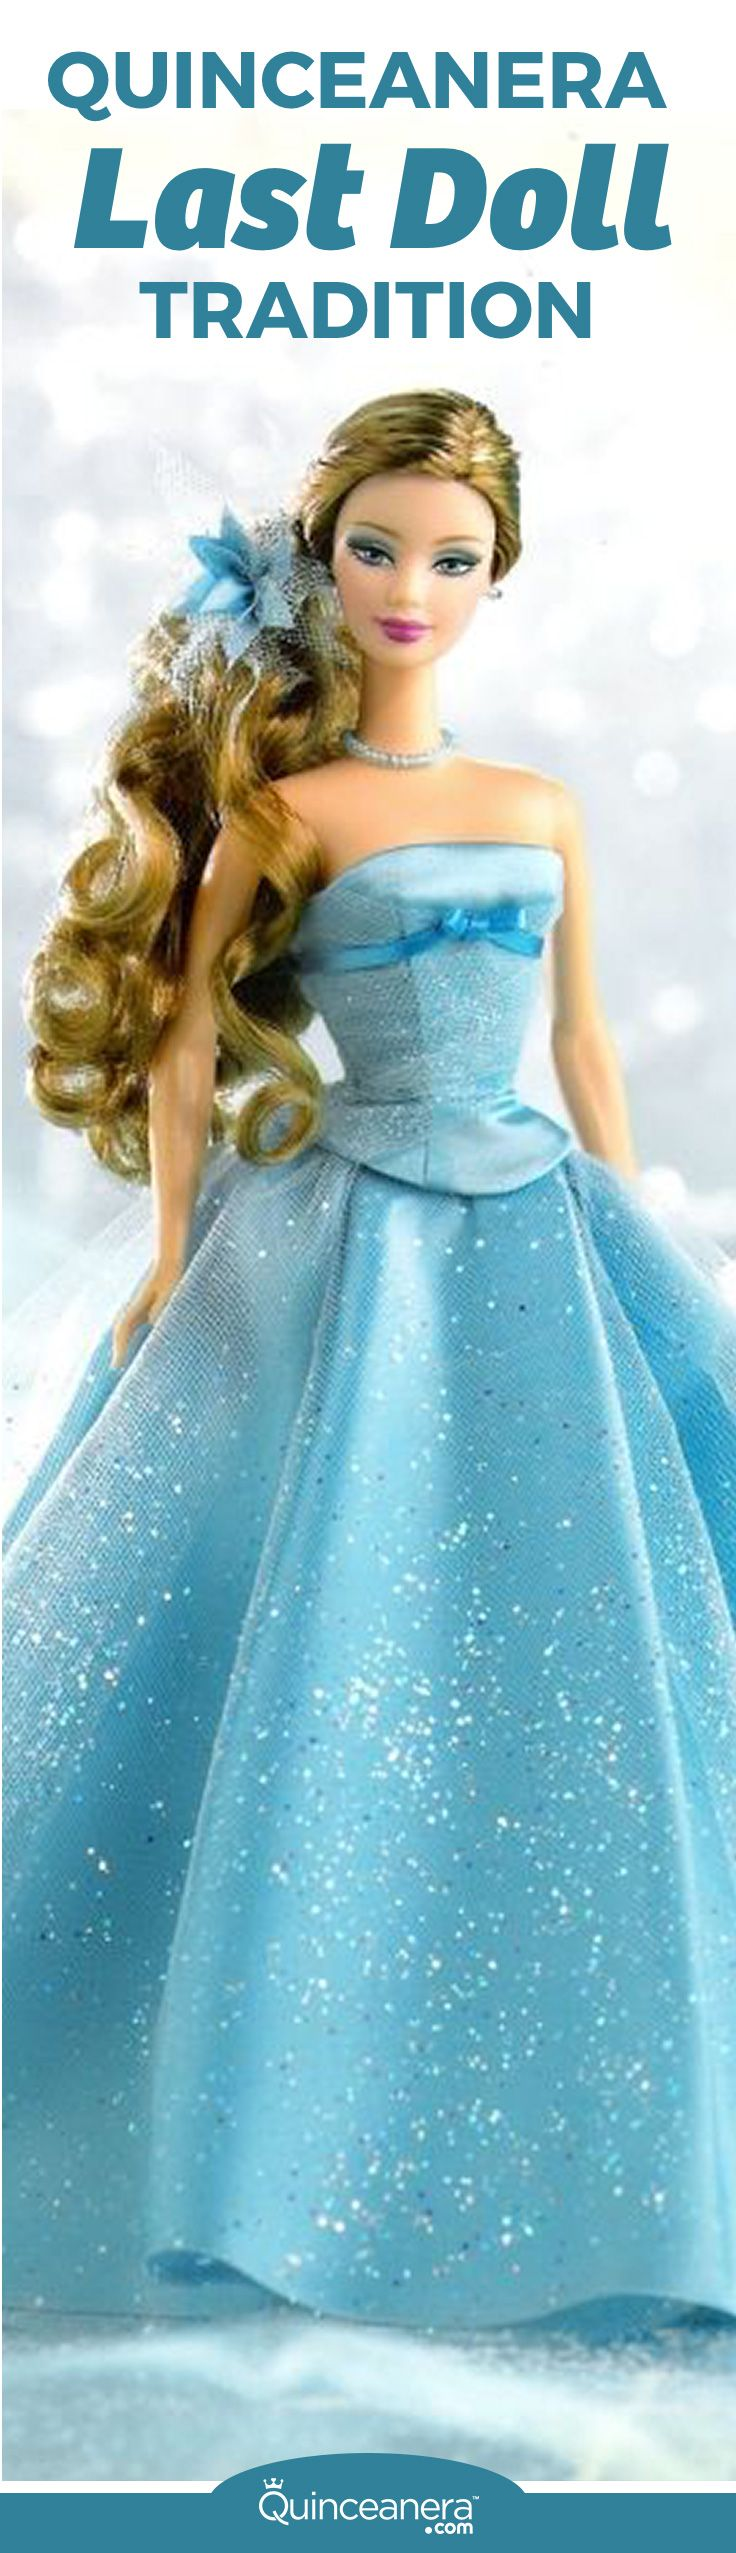 Here are a few options so you can show off the kid in you and let your imagination soar with the toys that accompany us throughout our childhood and can now become part of your Quince: - See more at: http://www.quinceanera.com/traditions/learn-more-about-the-quinceanera-last-doll-tradition/#sthash.Peq3GG1l.dpuf